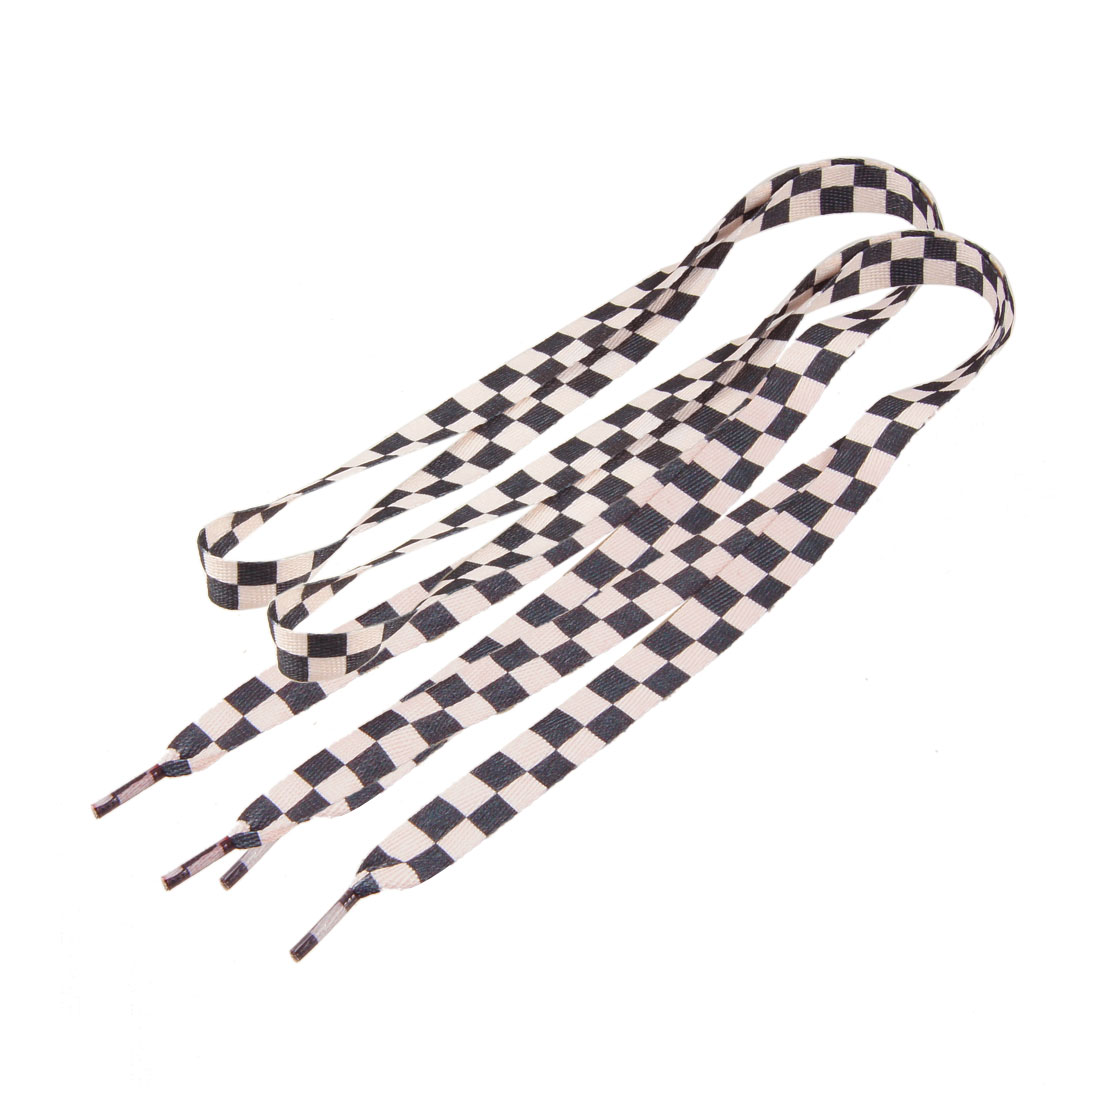 Light Pink Black Checked Flat Sports Shoes Shoelaces Pair